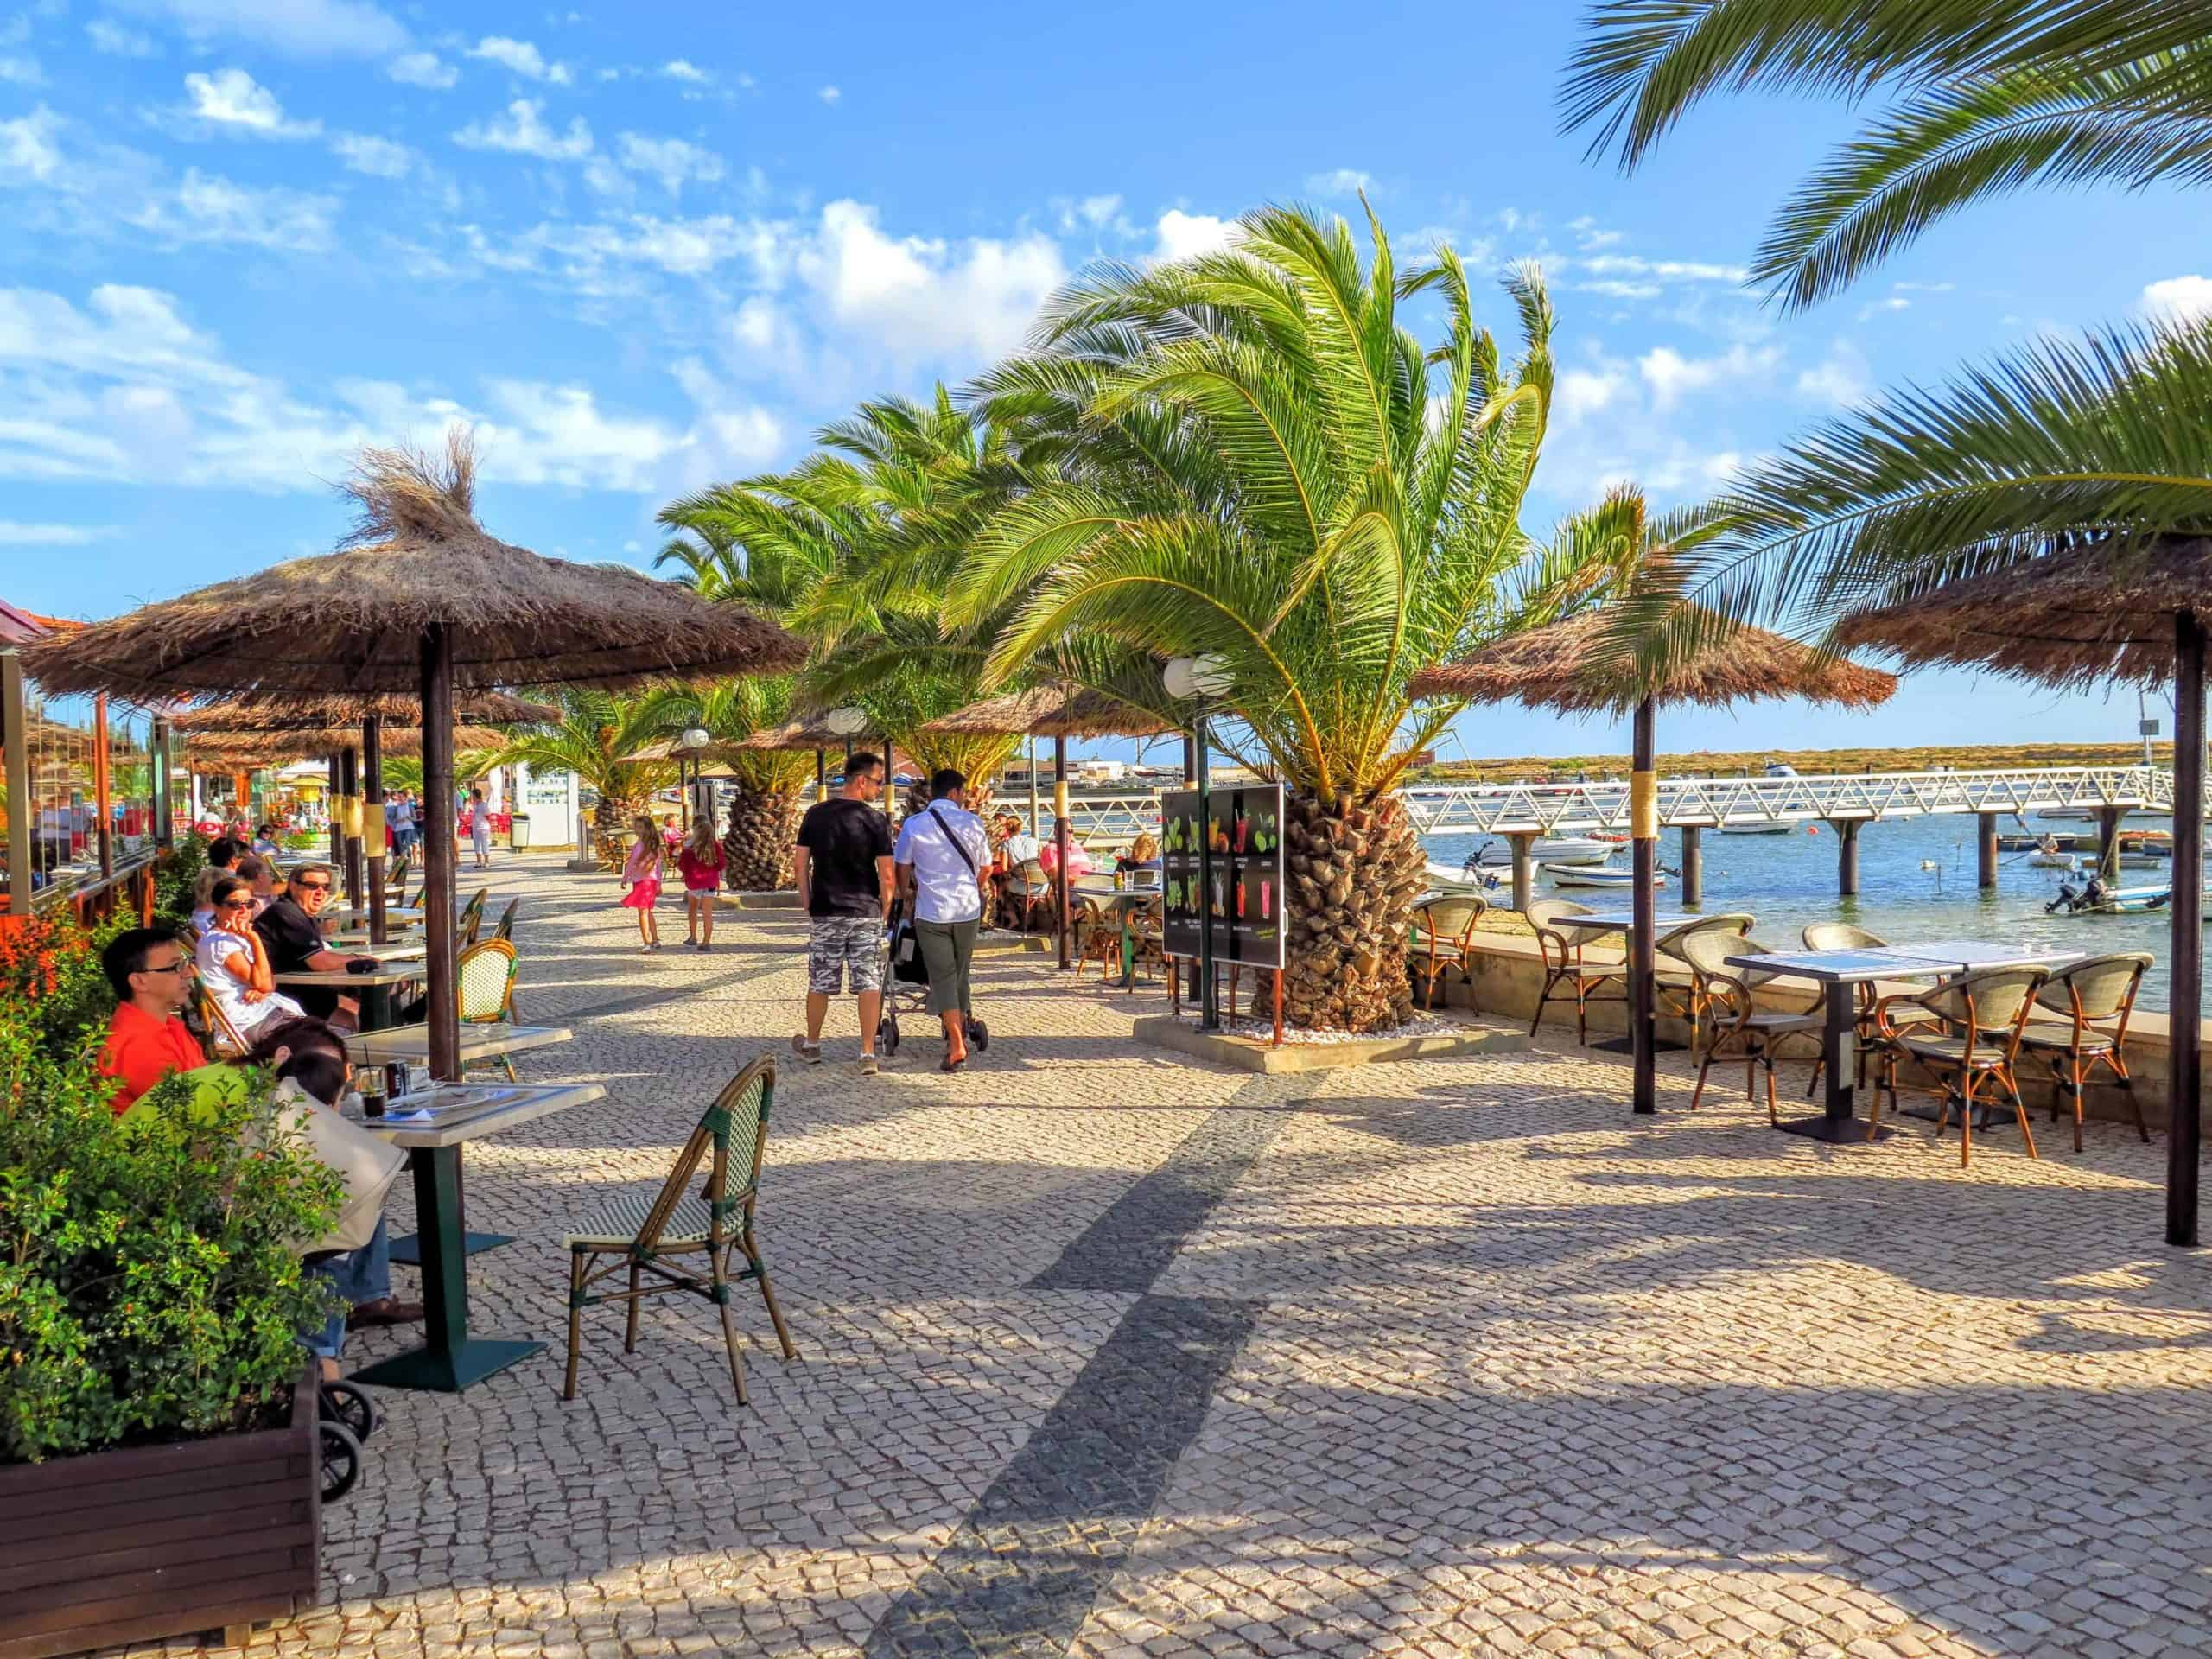 Ria in Alvor and the best time to visit the Algarve.